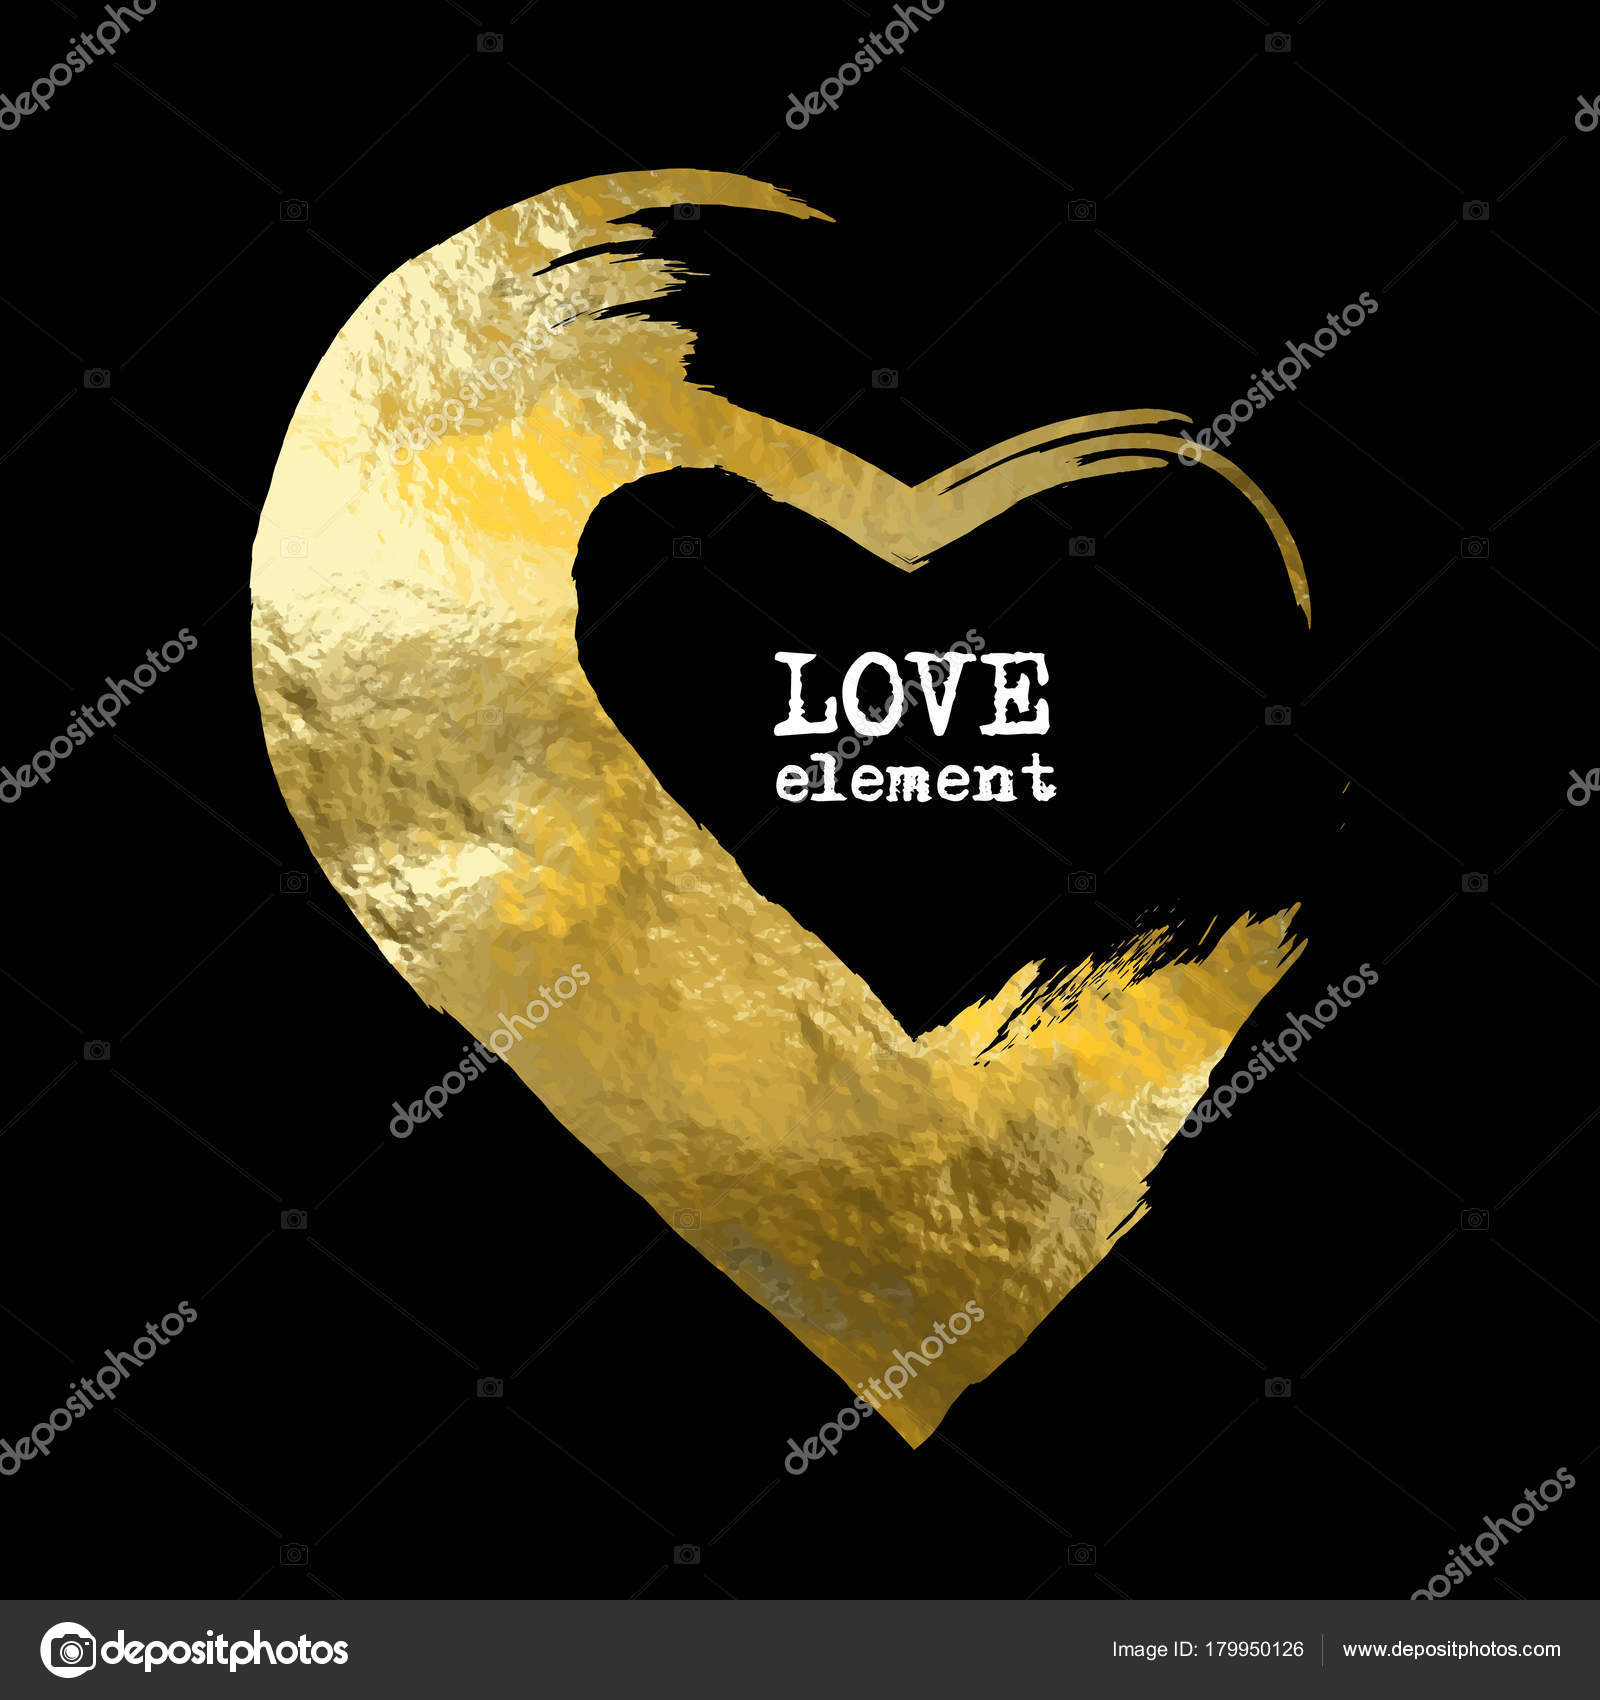 Heart Gold Foil Glitter Vector Hand Drawn Icon Black Background